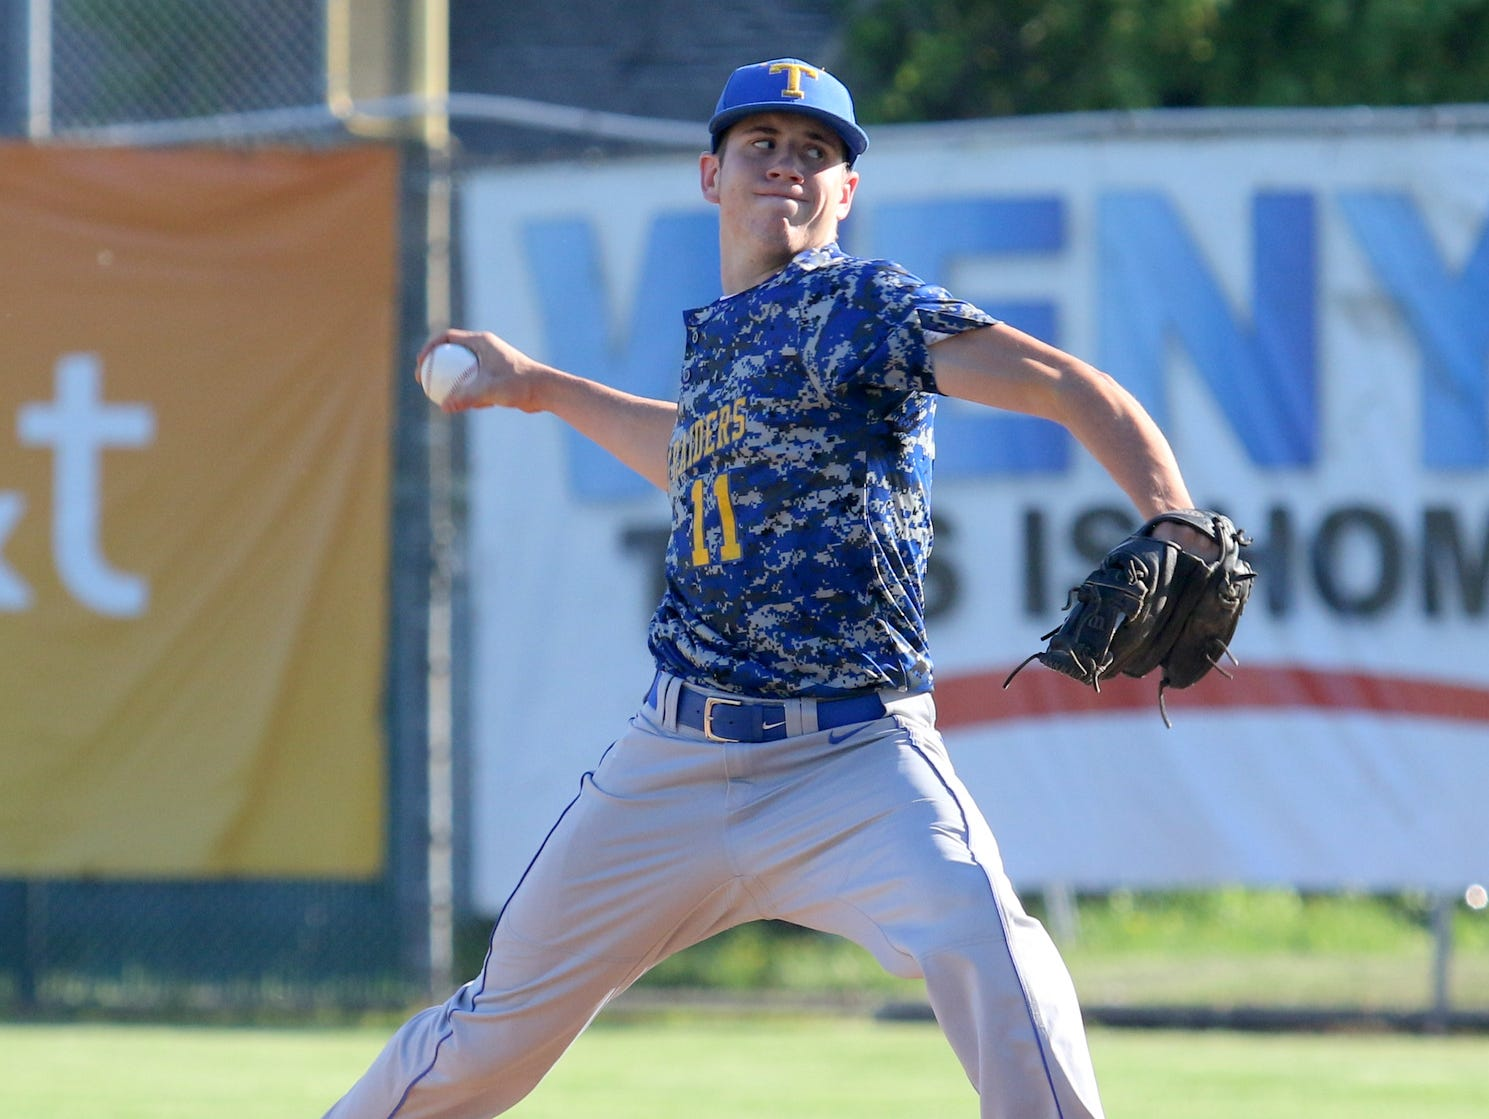 Trumansburg's Trevor Rumsey delivers a pitch against Tioga in the IAC Small School championship game at Dunn Field on Thursday.